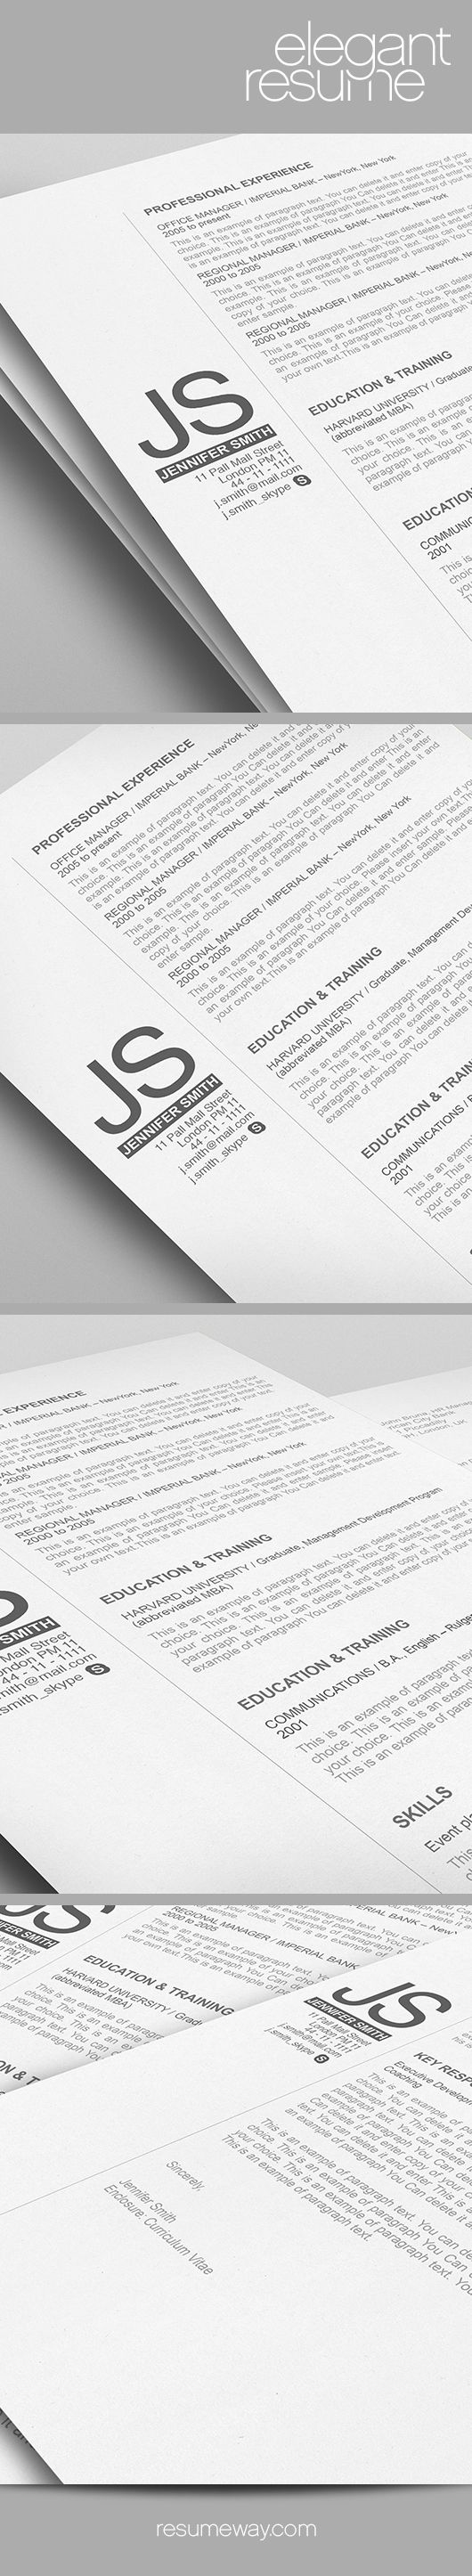 elegant resume template 110540 premium line of resume cover letter templates easy. Resume Example. Resume CV Cover Letter